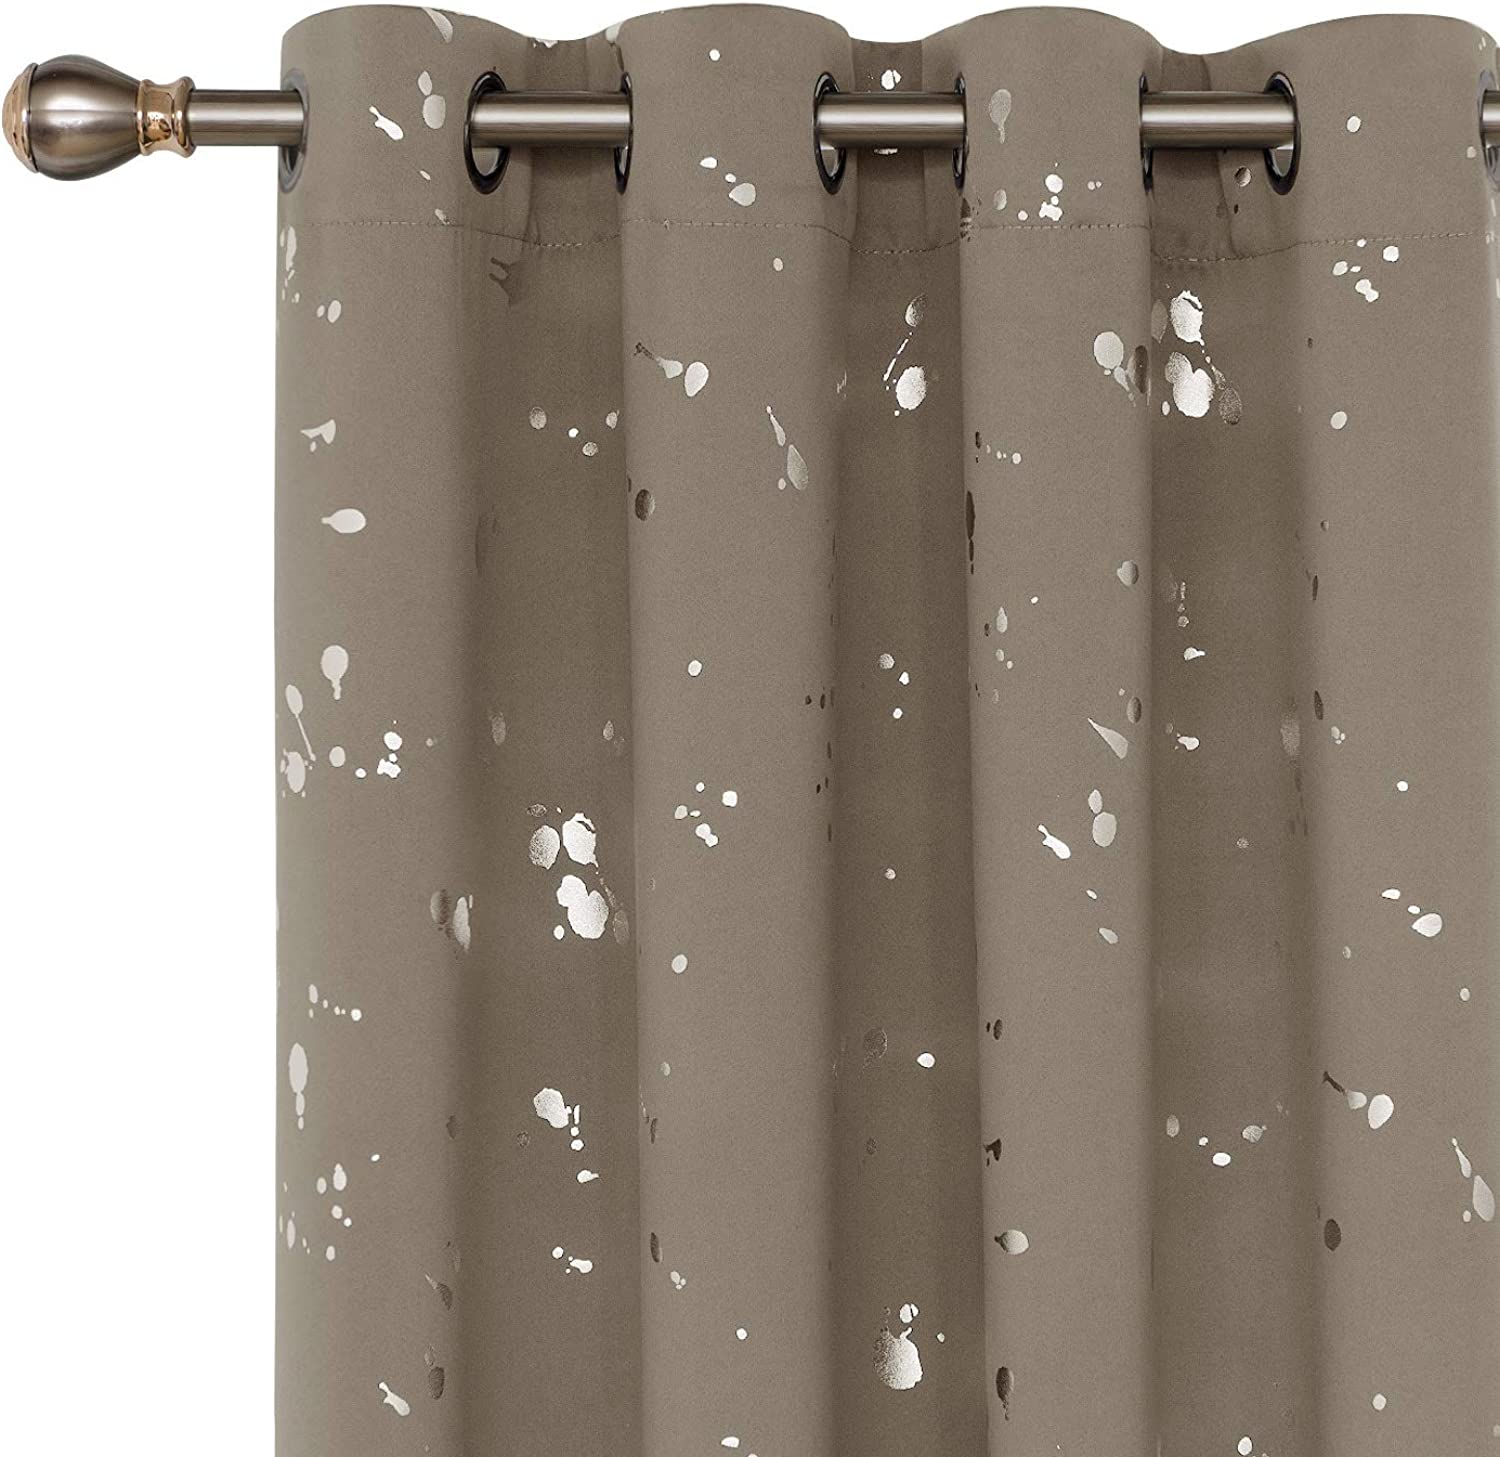 Deconovo Silver Dots Printed Thermal Insulated Blackout Curtains with Grommet Top Light Blocking Curtains for Bedroom 52 W x 84 L Taupe 2 Panels